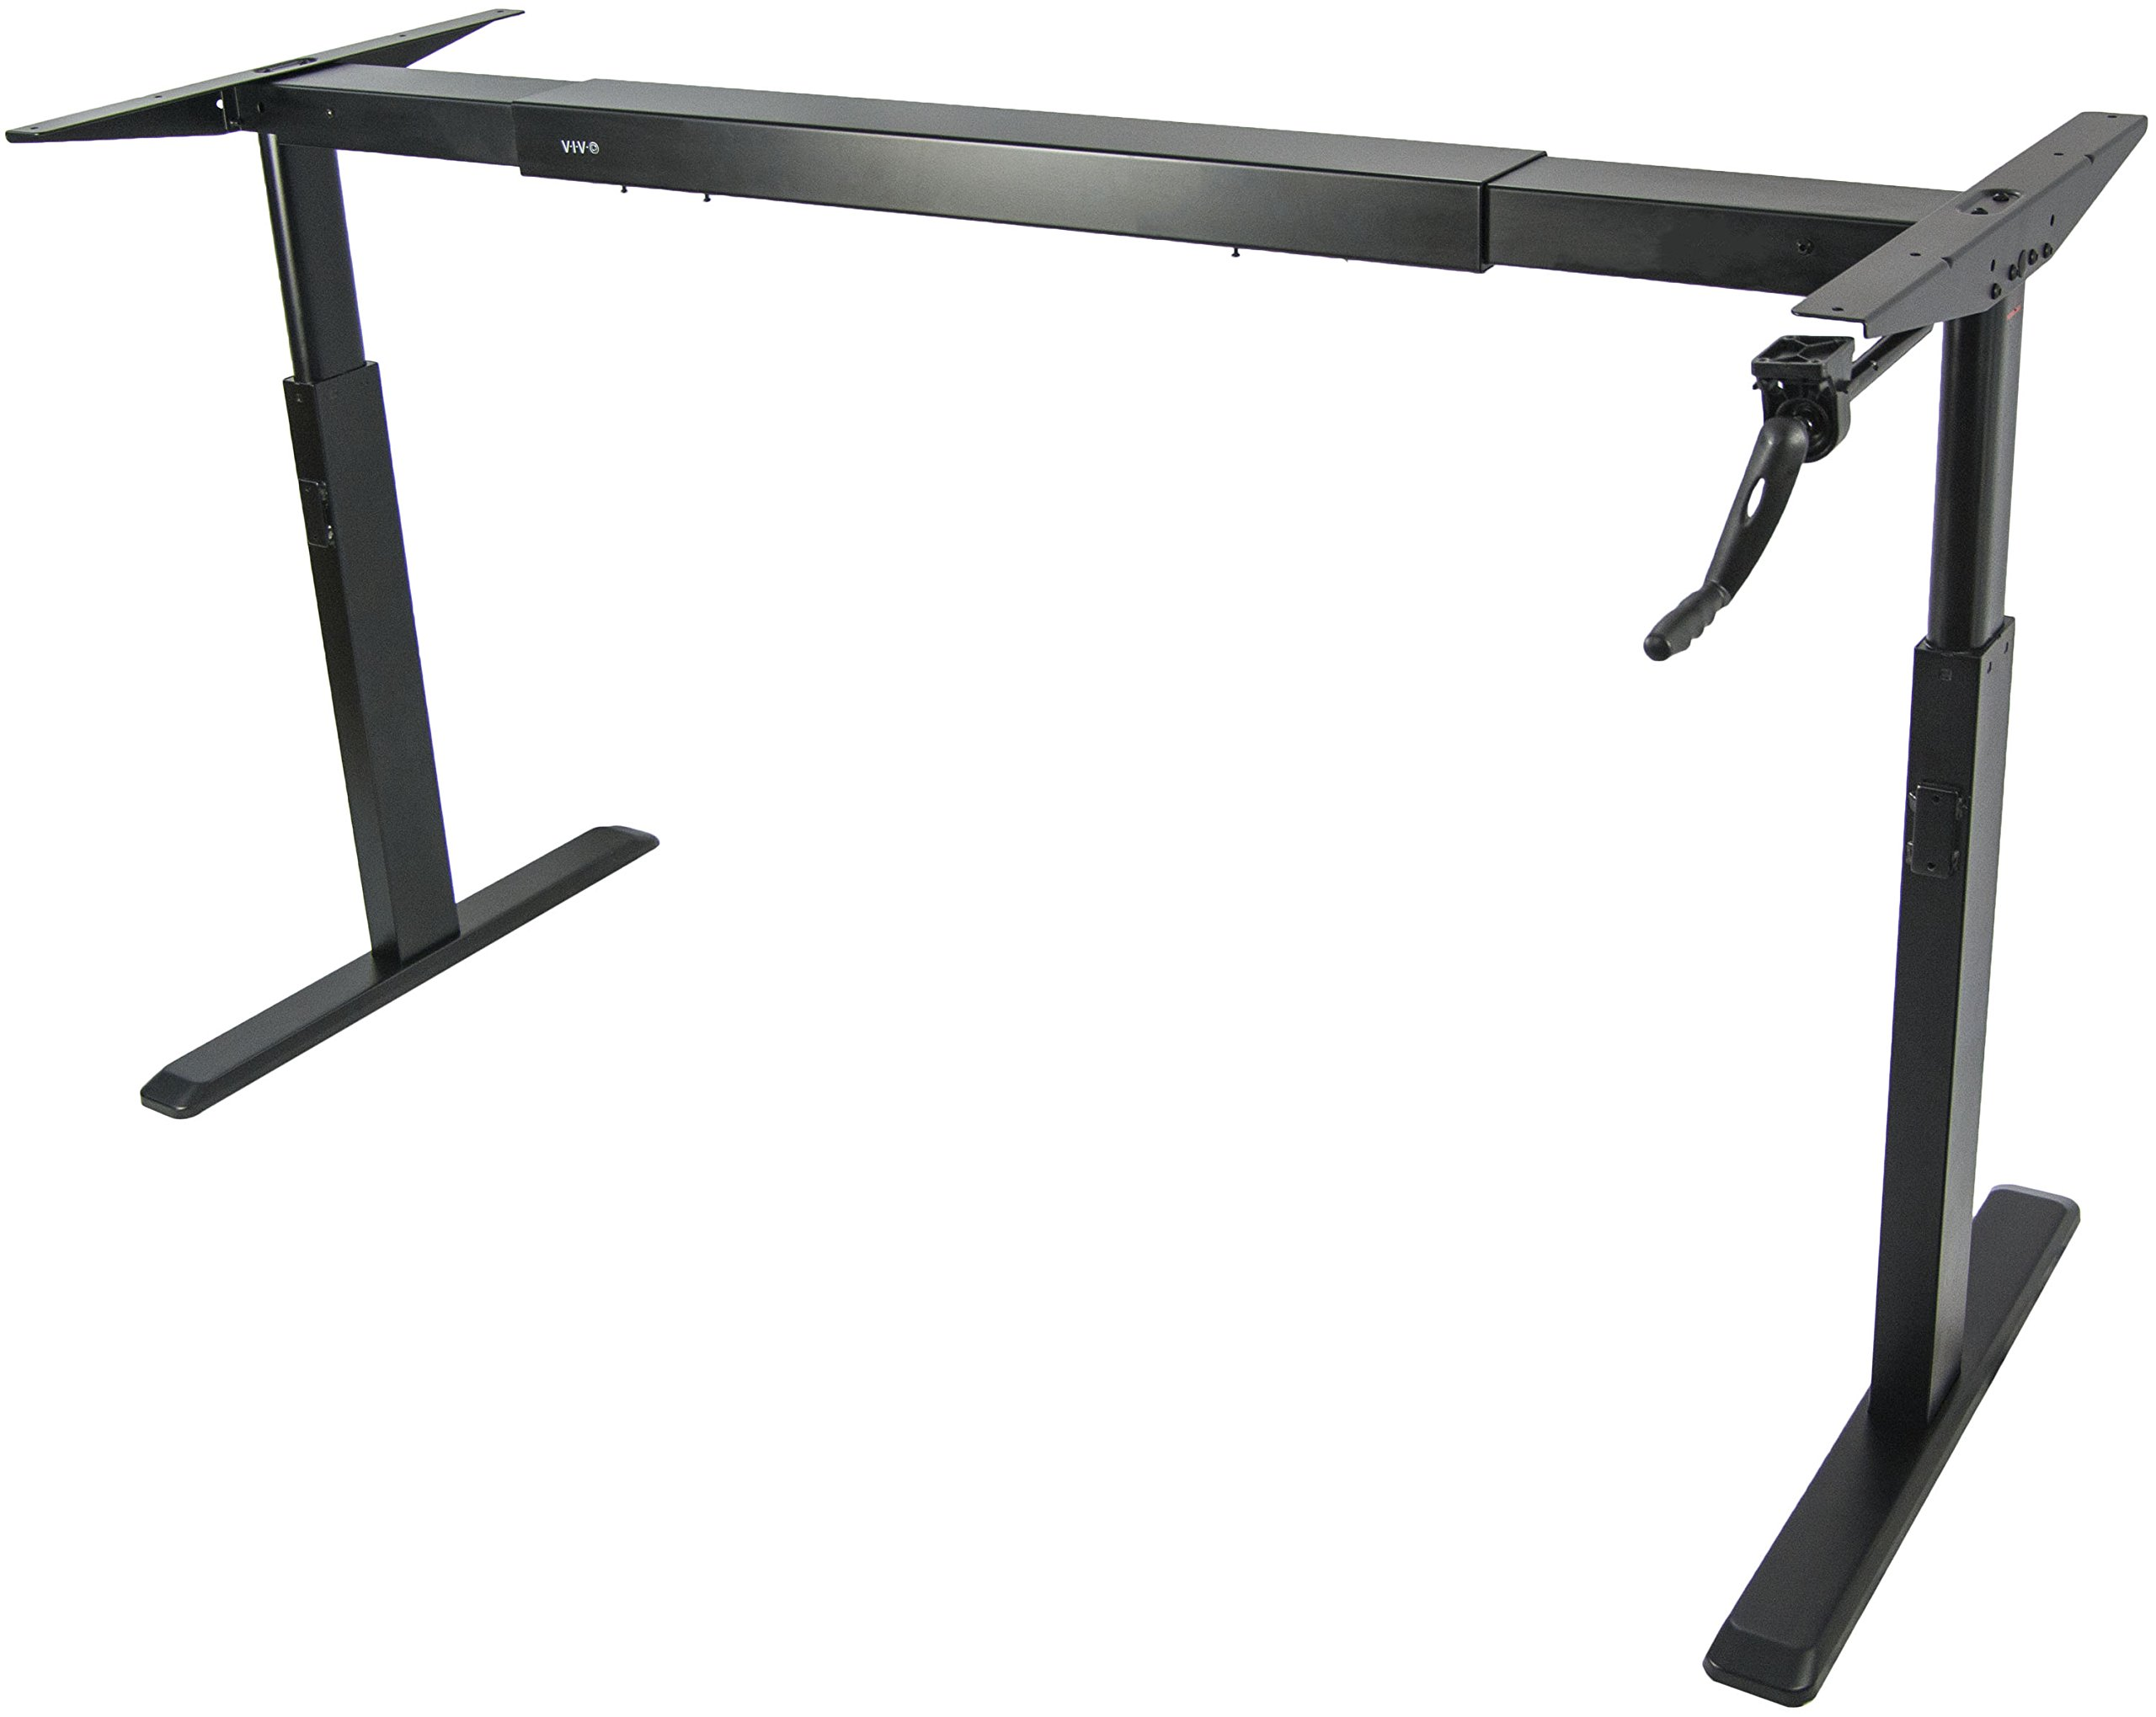 VIVO Manual Crank Stand Up Steel Desk Frame System Ergonomic Standing Height Adjustable (DESK-V100M)